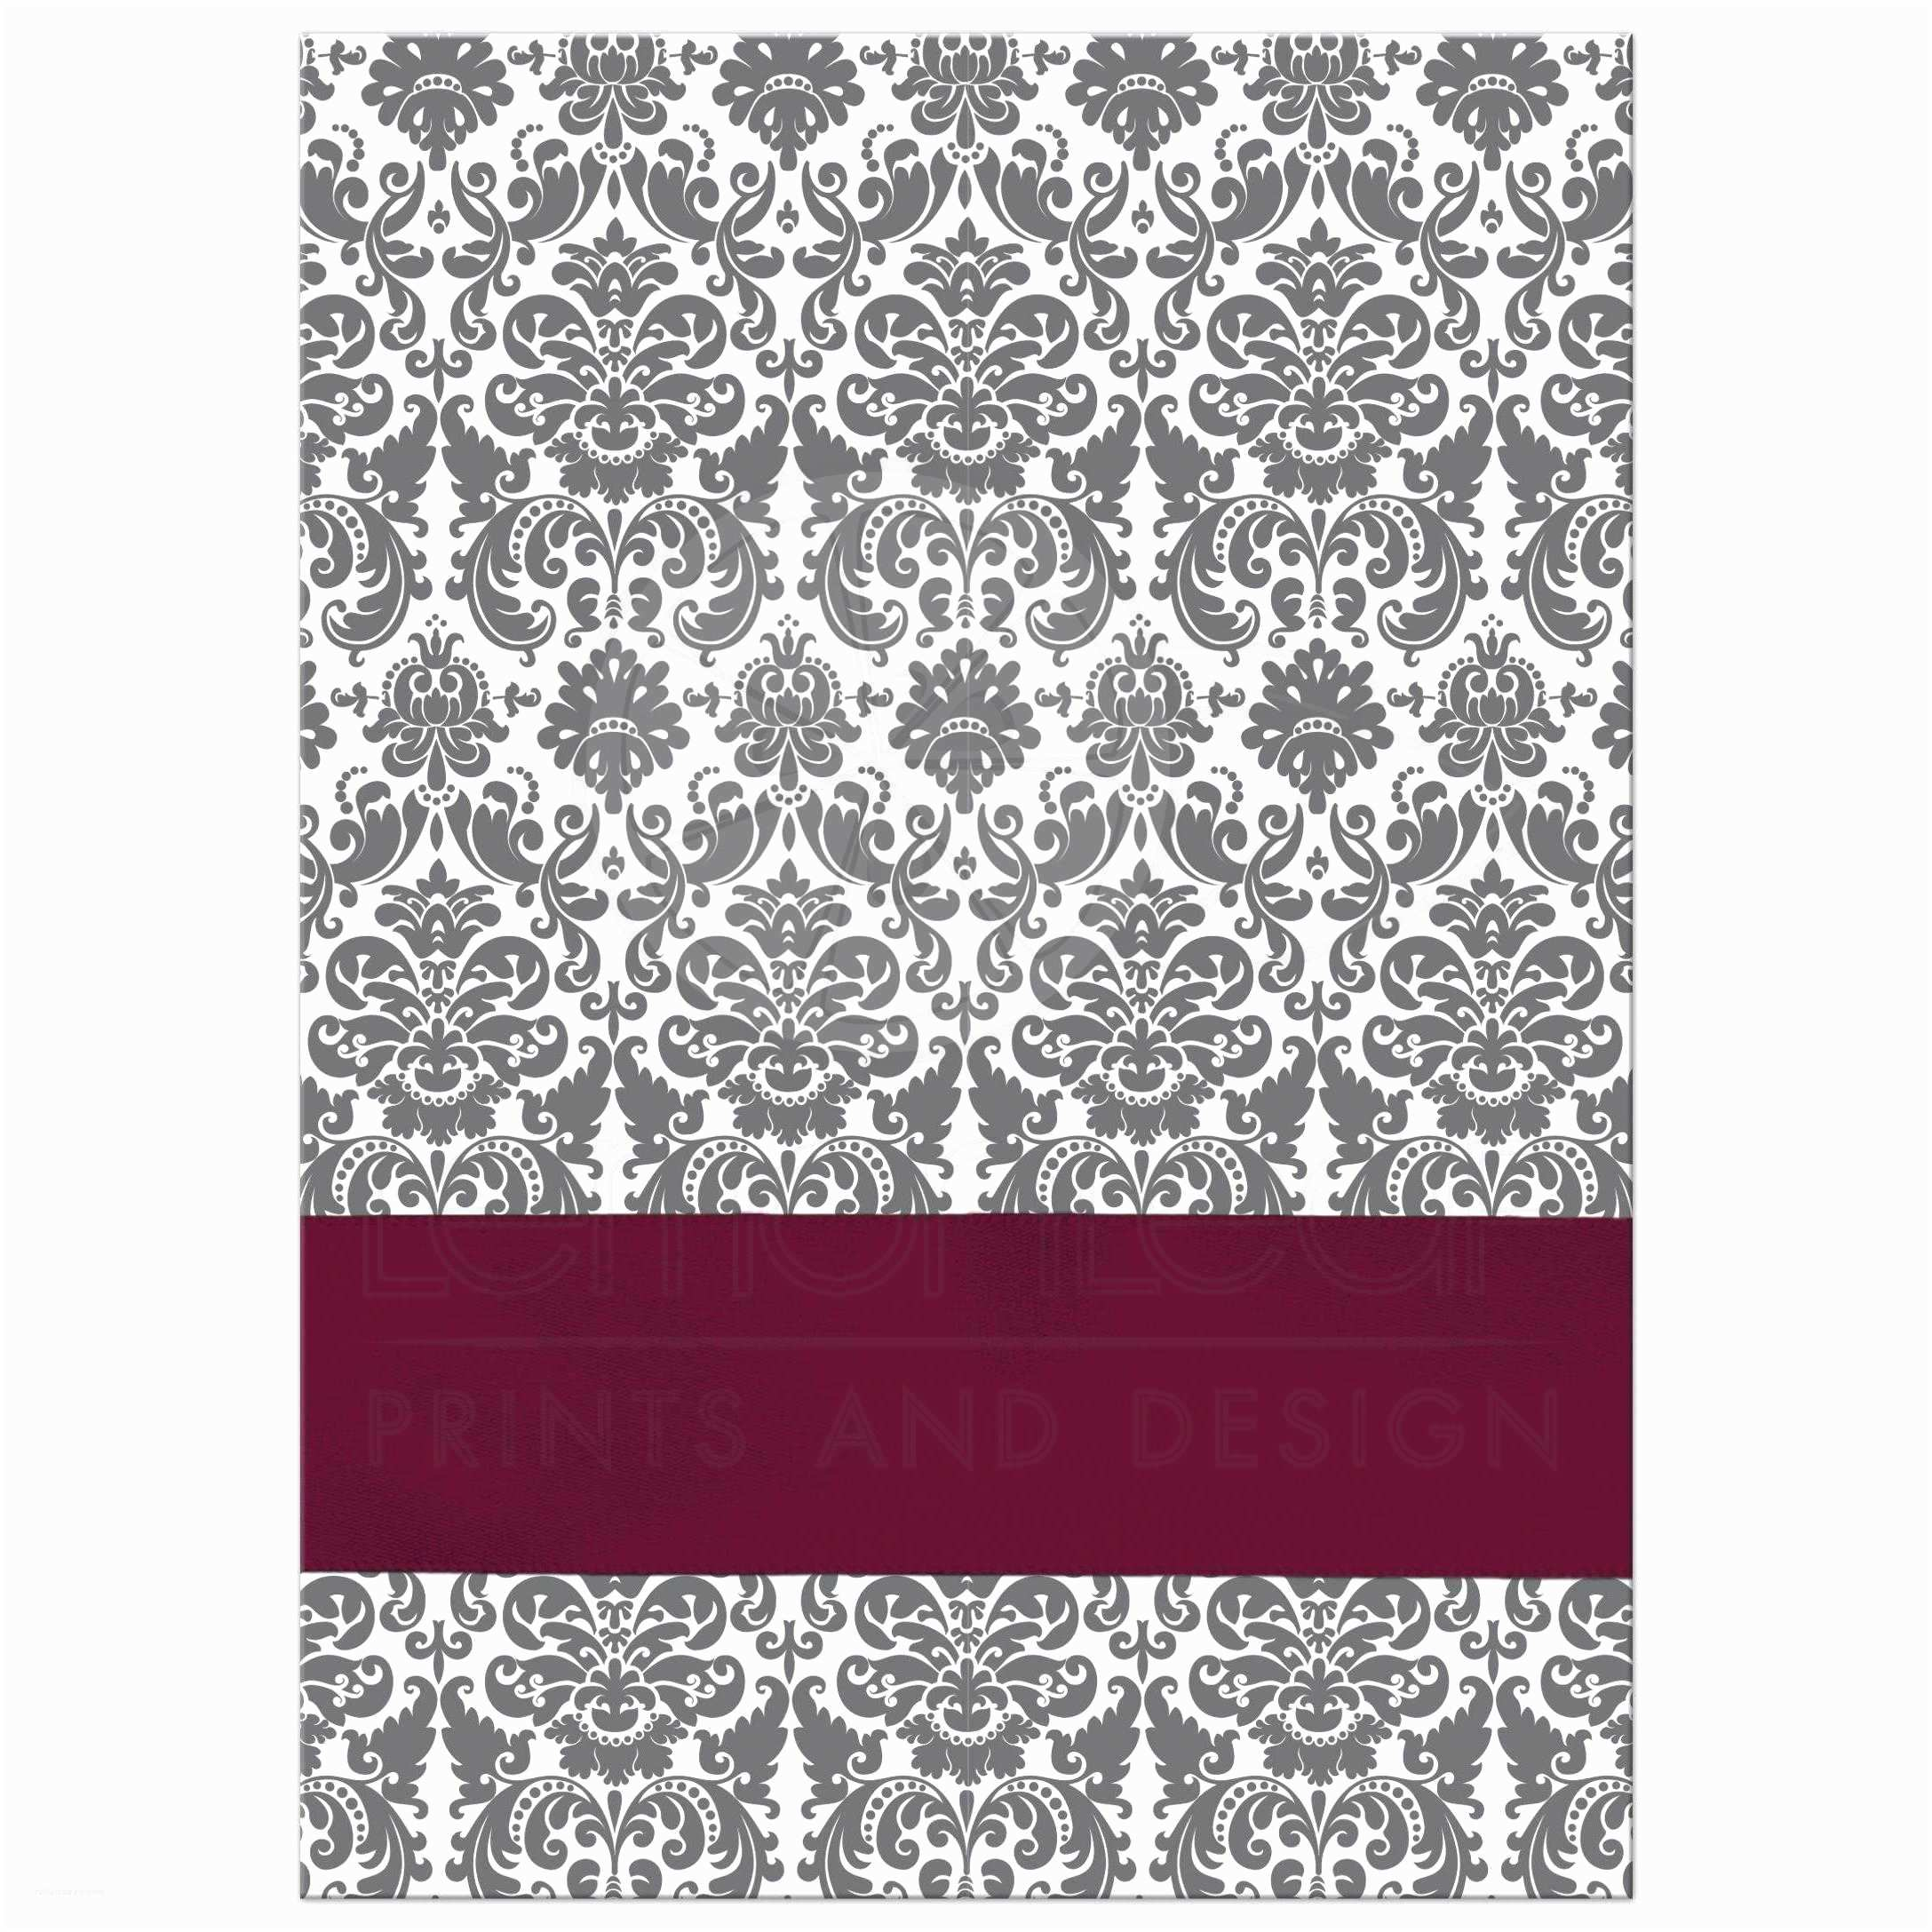 Burgundy and Gray Wedding Invitations Gray White Damask Wedding Invitation Printed On Burgundy